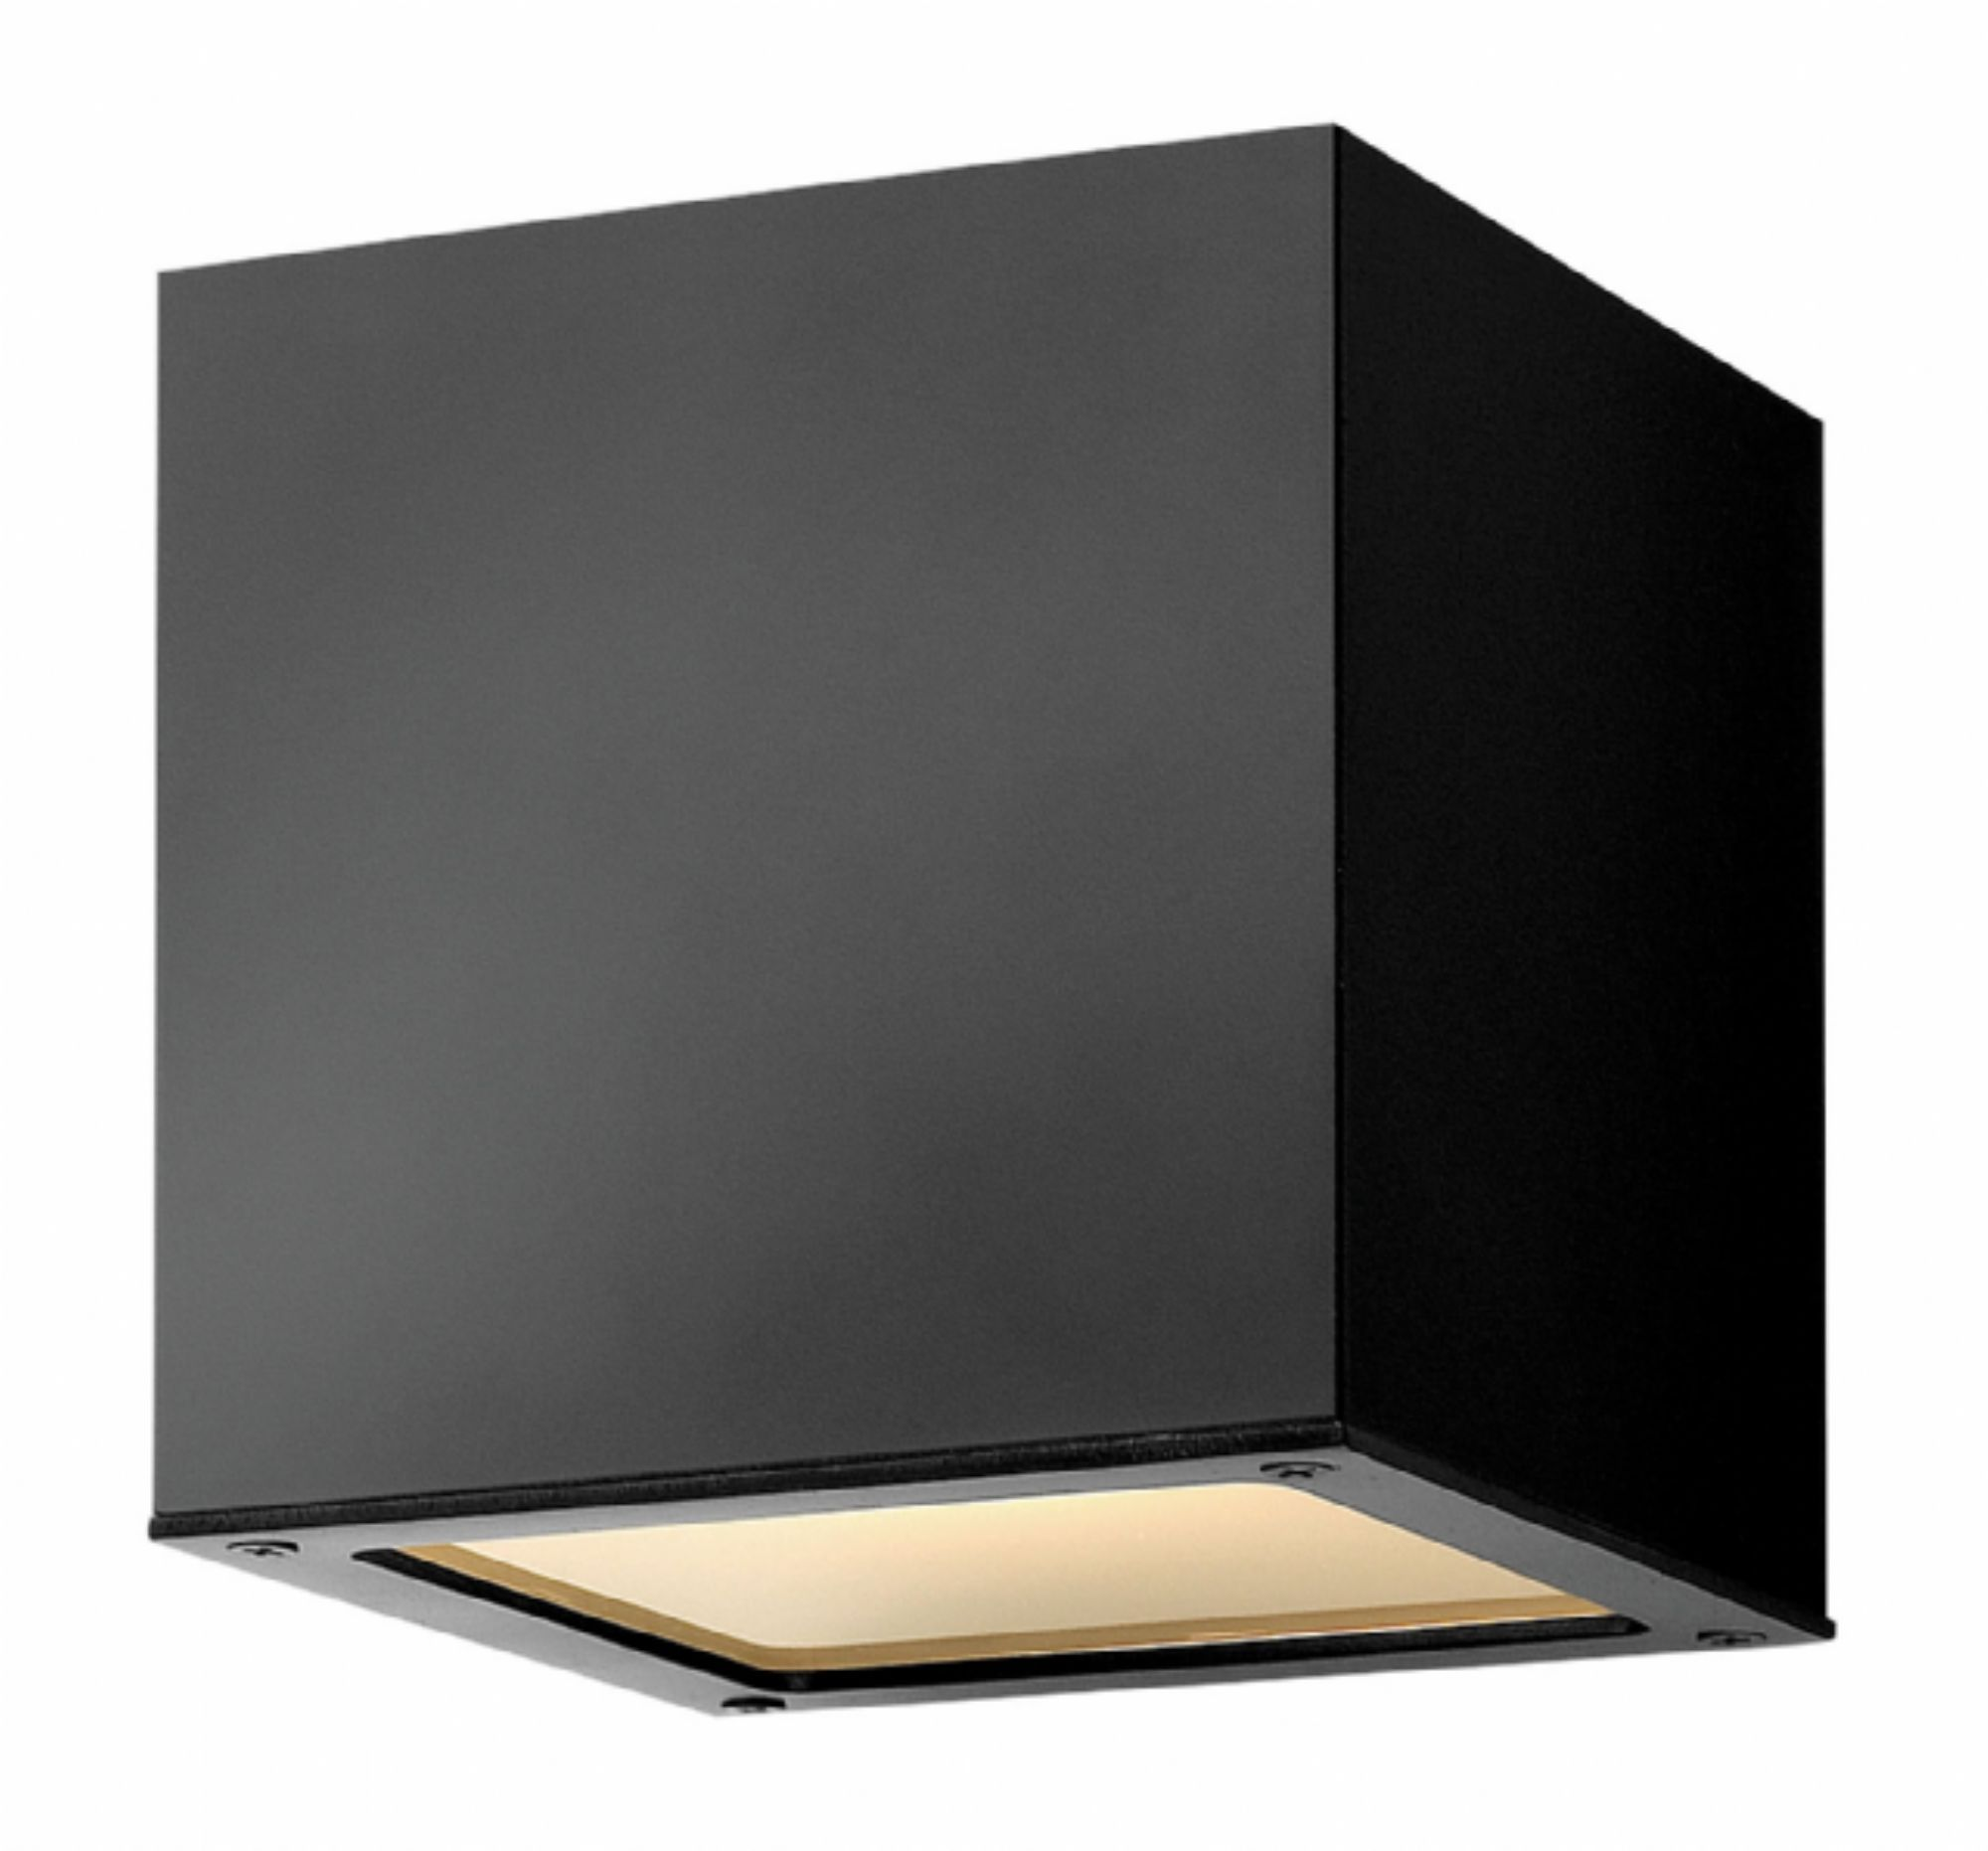 Hinkley lighting kube 1766sk favorite lighting pinterest hinkley lighting 1767 height 1 light outdoor wall sconce from the kube collec satin black outdoor lighting wall sconces outdoor wall sconces mozeypictures Gallery